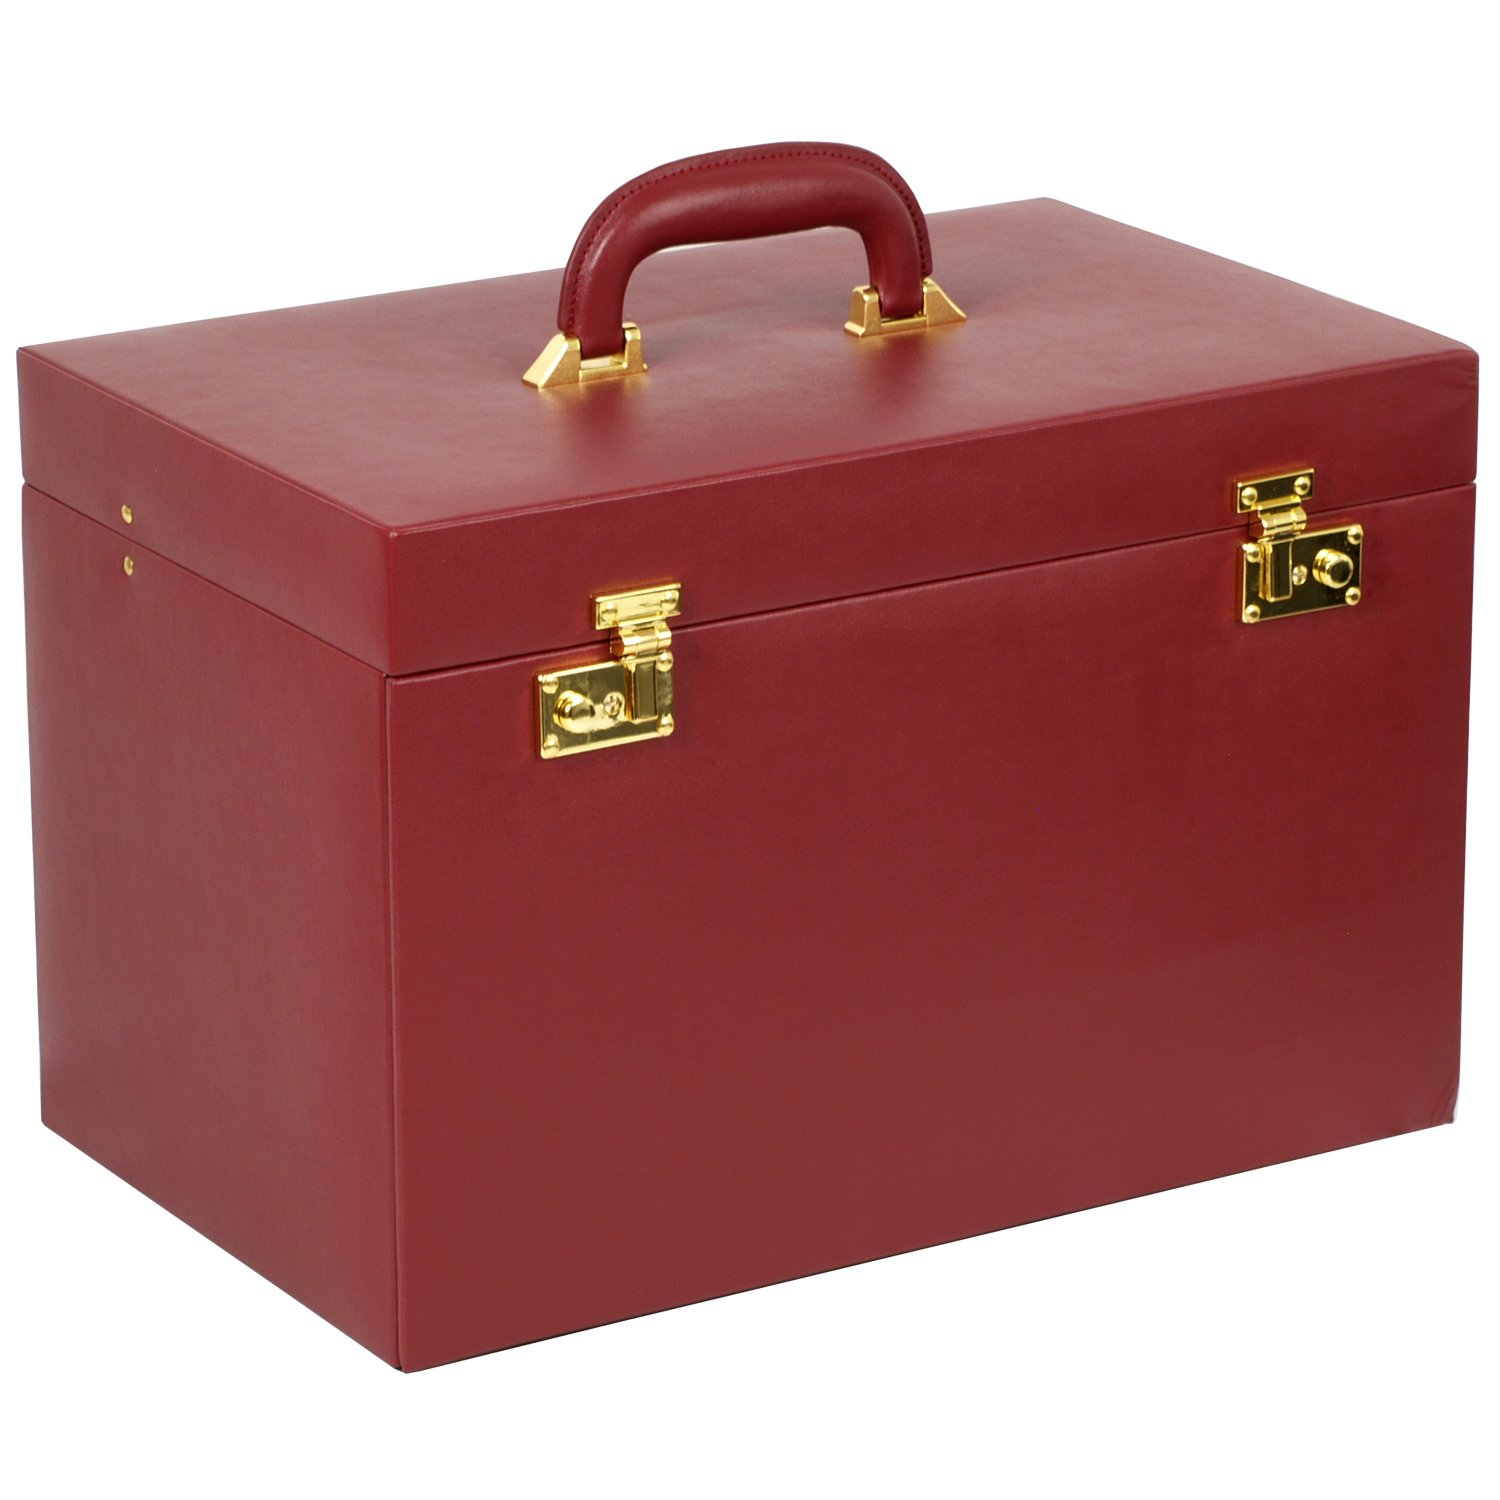 WOLF 280804 Heritage Jewelry Trunk, Red